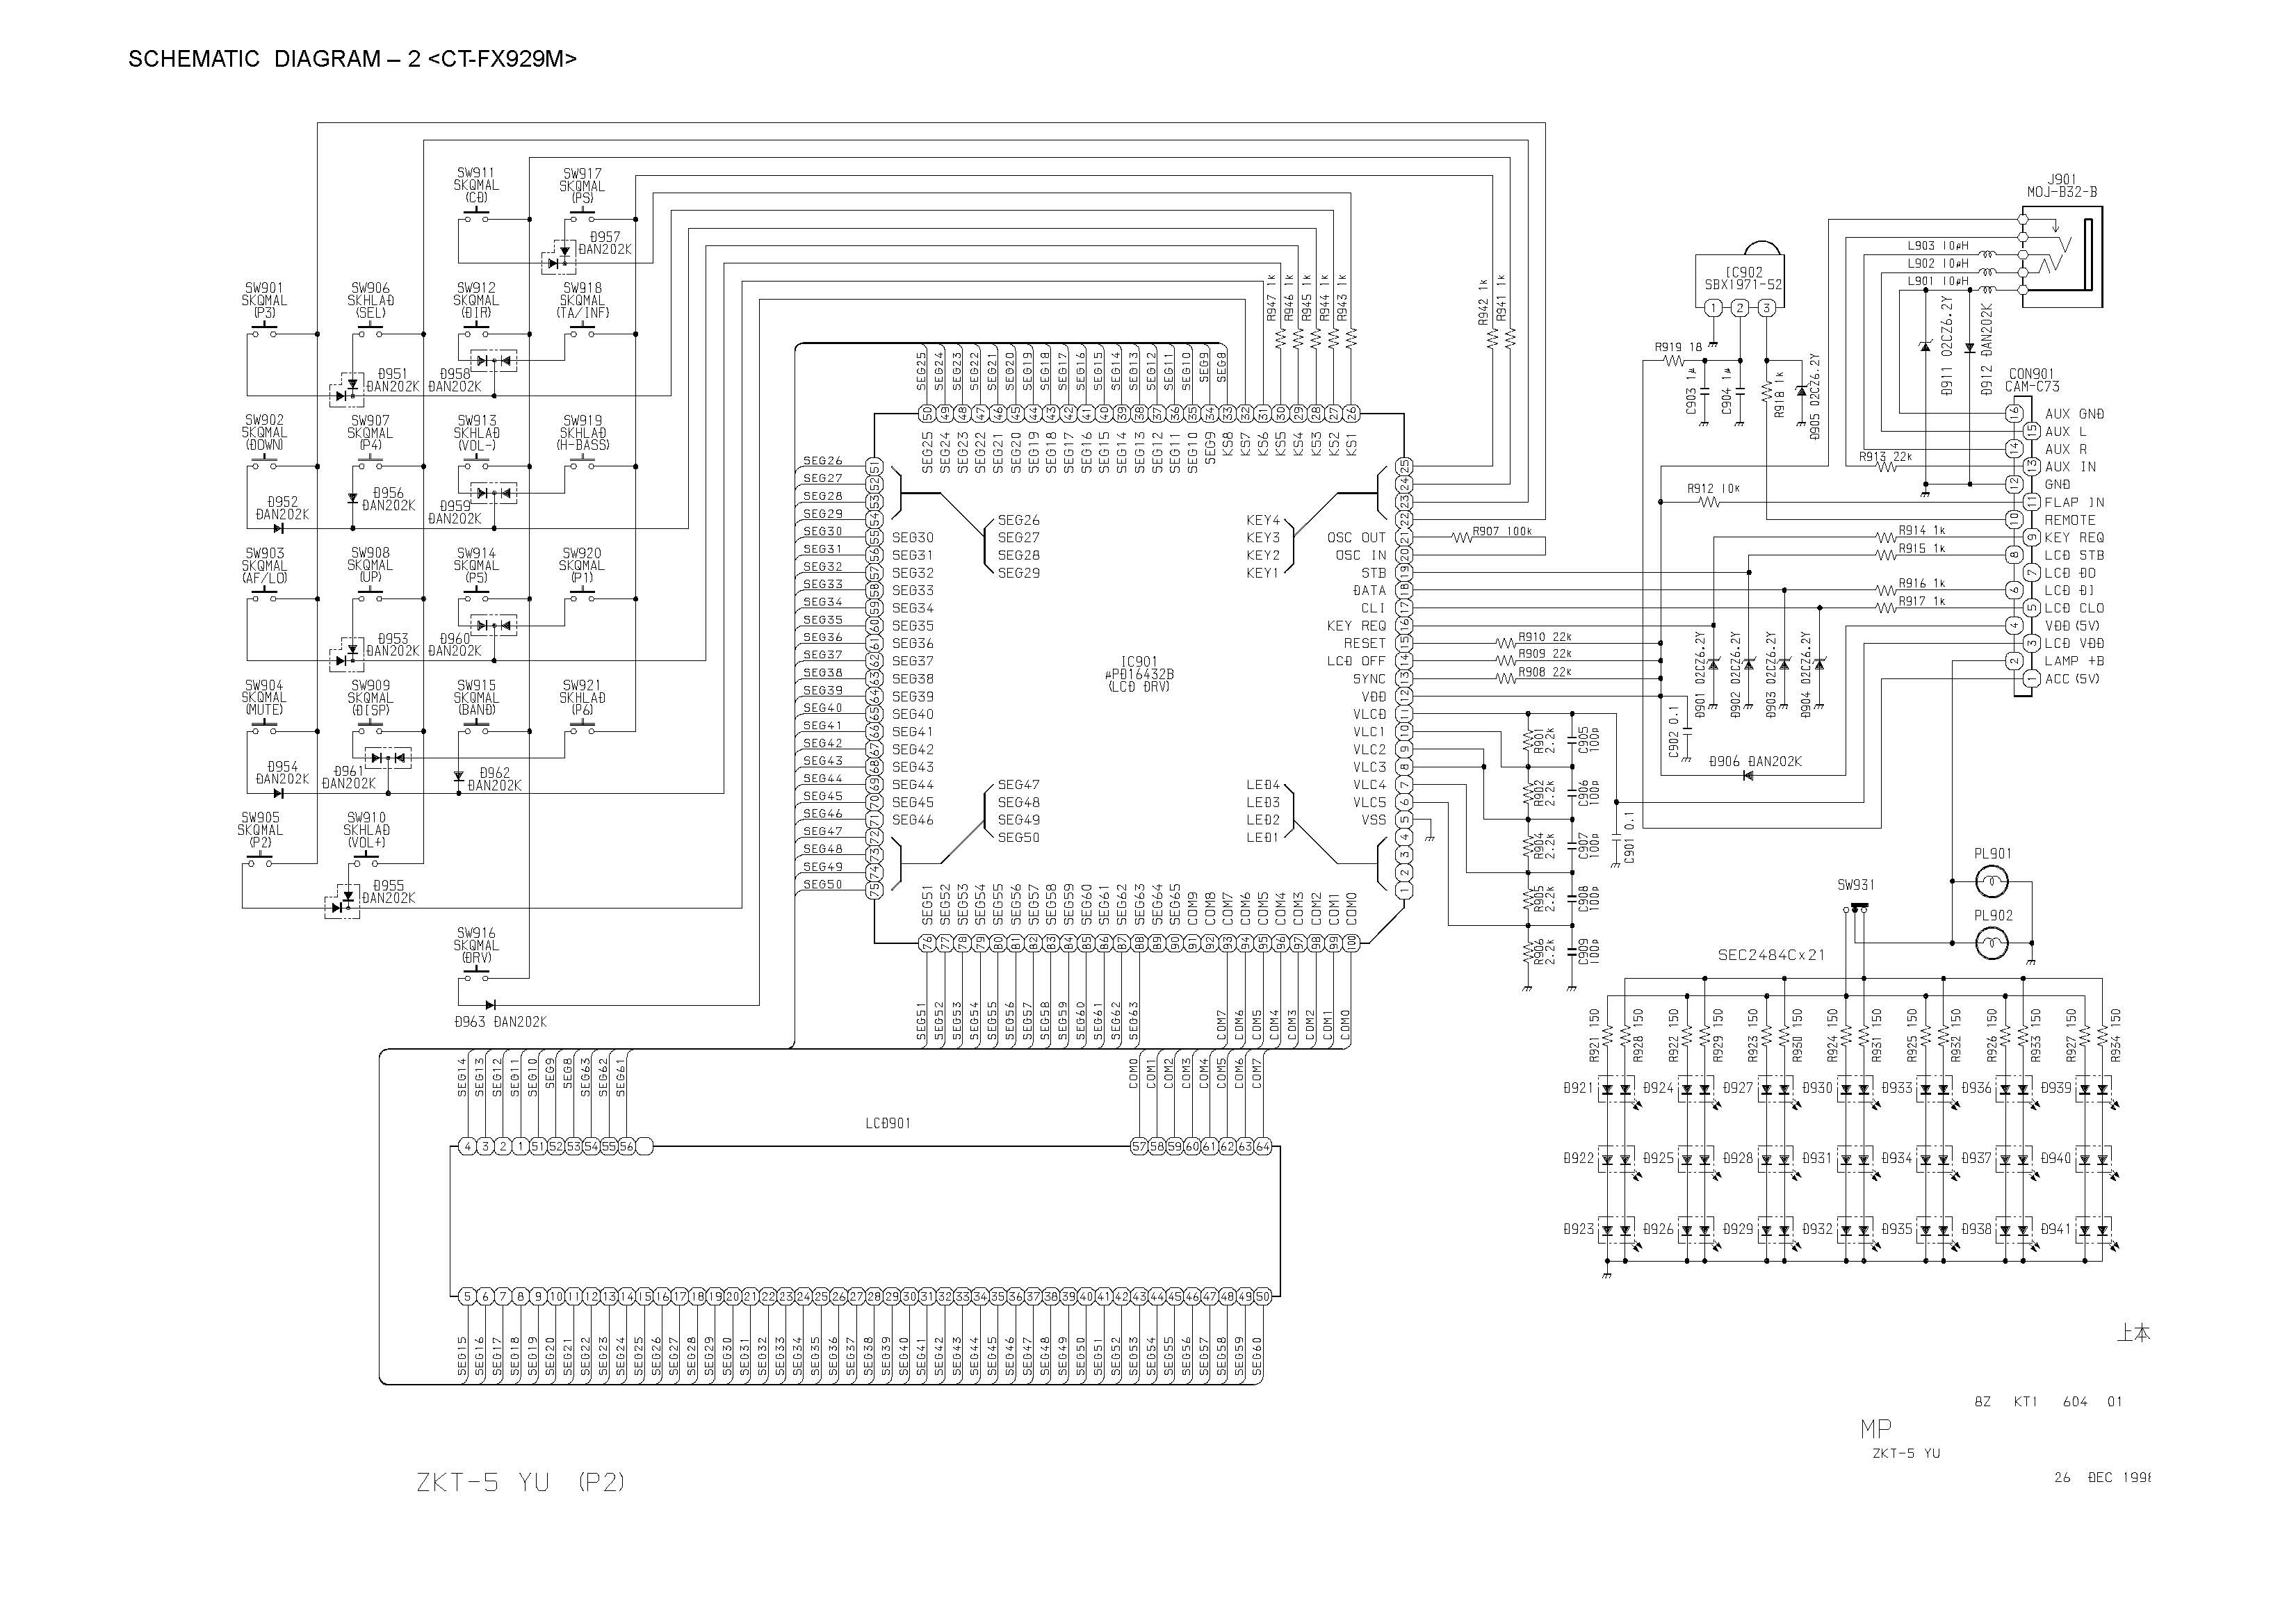 Aiwa CT-FX719 Schematic Diagram (Main / Front) in PDF